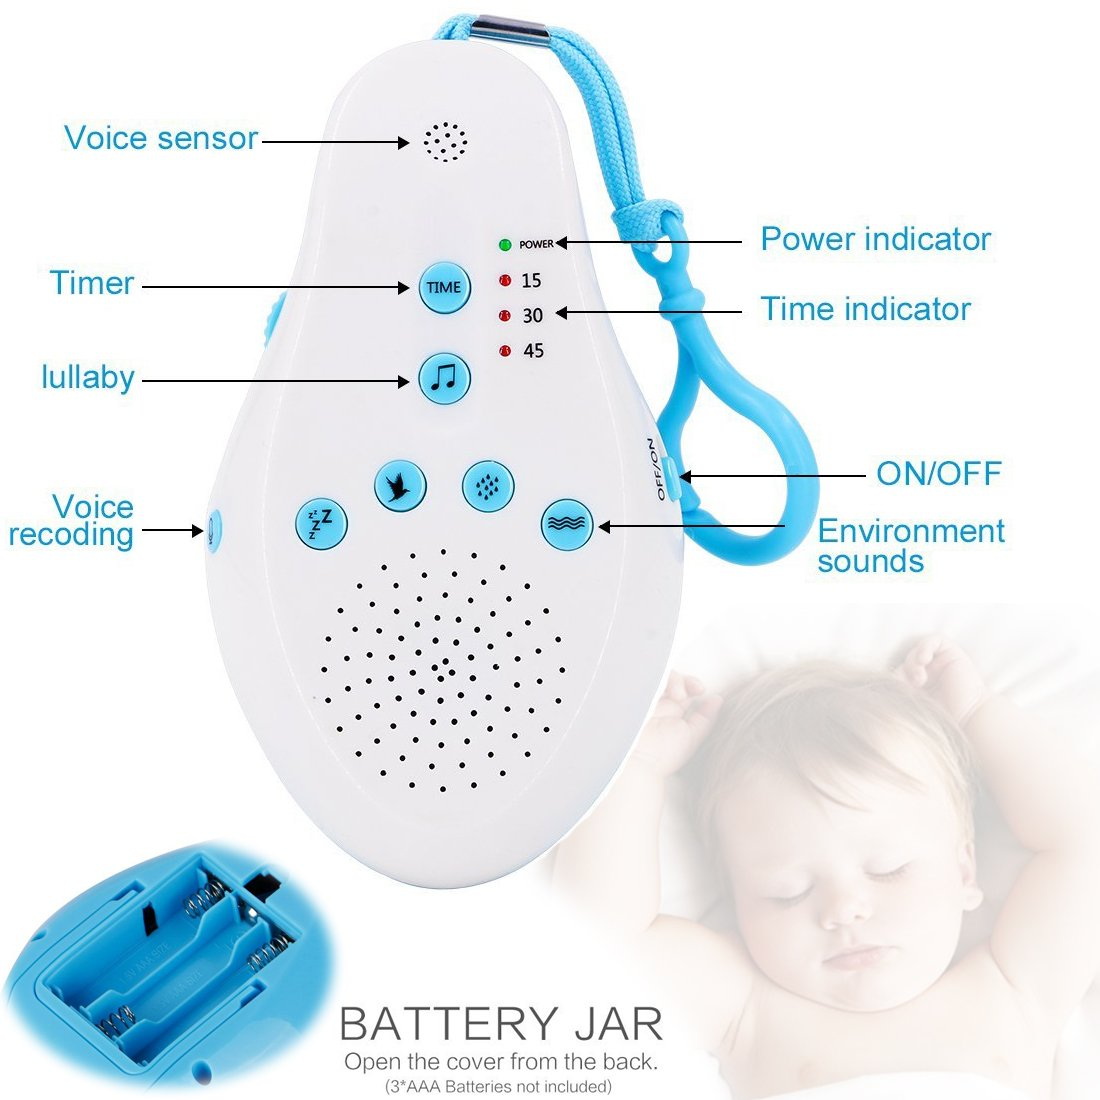 ZmZm Deep Sleep And Grooming Kit For Newborns, Infants & Toddlers. Smart Interactive Soother With Cry Sensor & Healthcare Kit (Bundle-11 items:1 Baby Soother + 10 Pcs Baby Nursery kit)-Blue by ZmZm (Image #4)